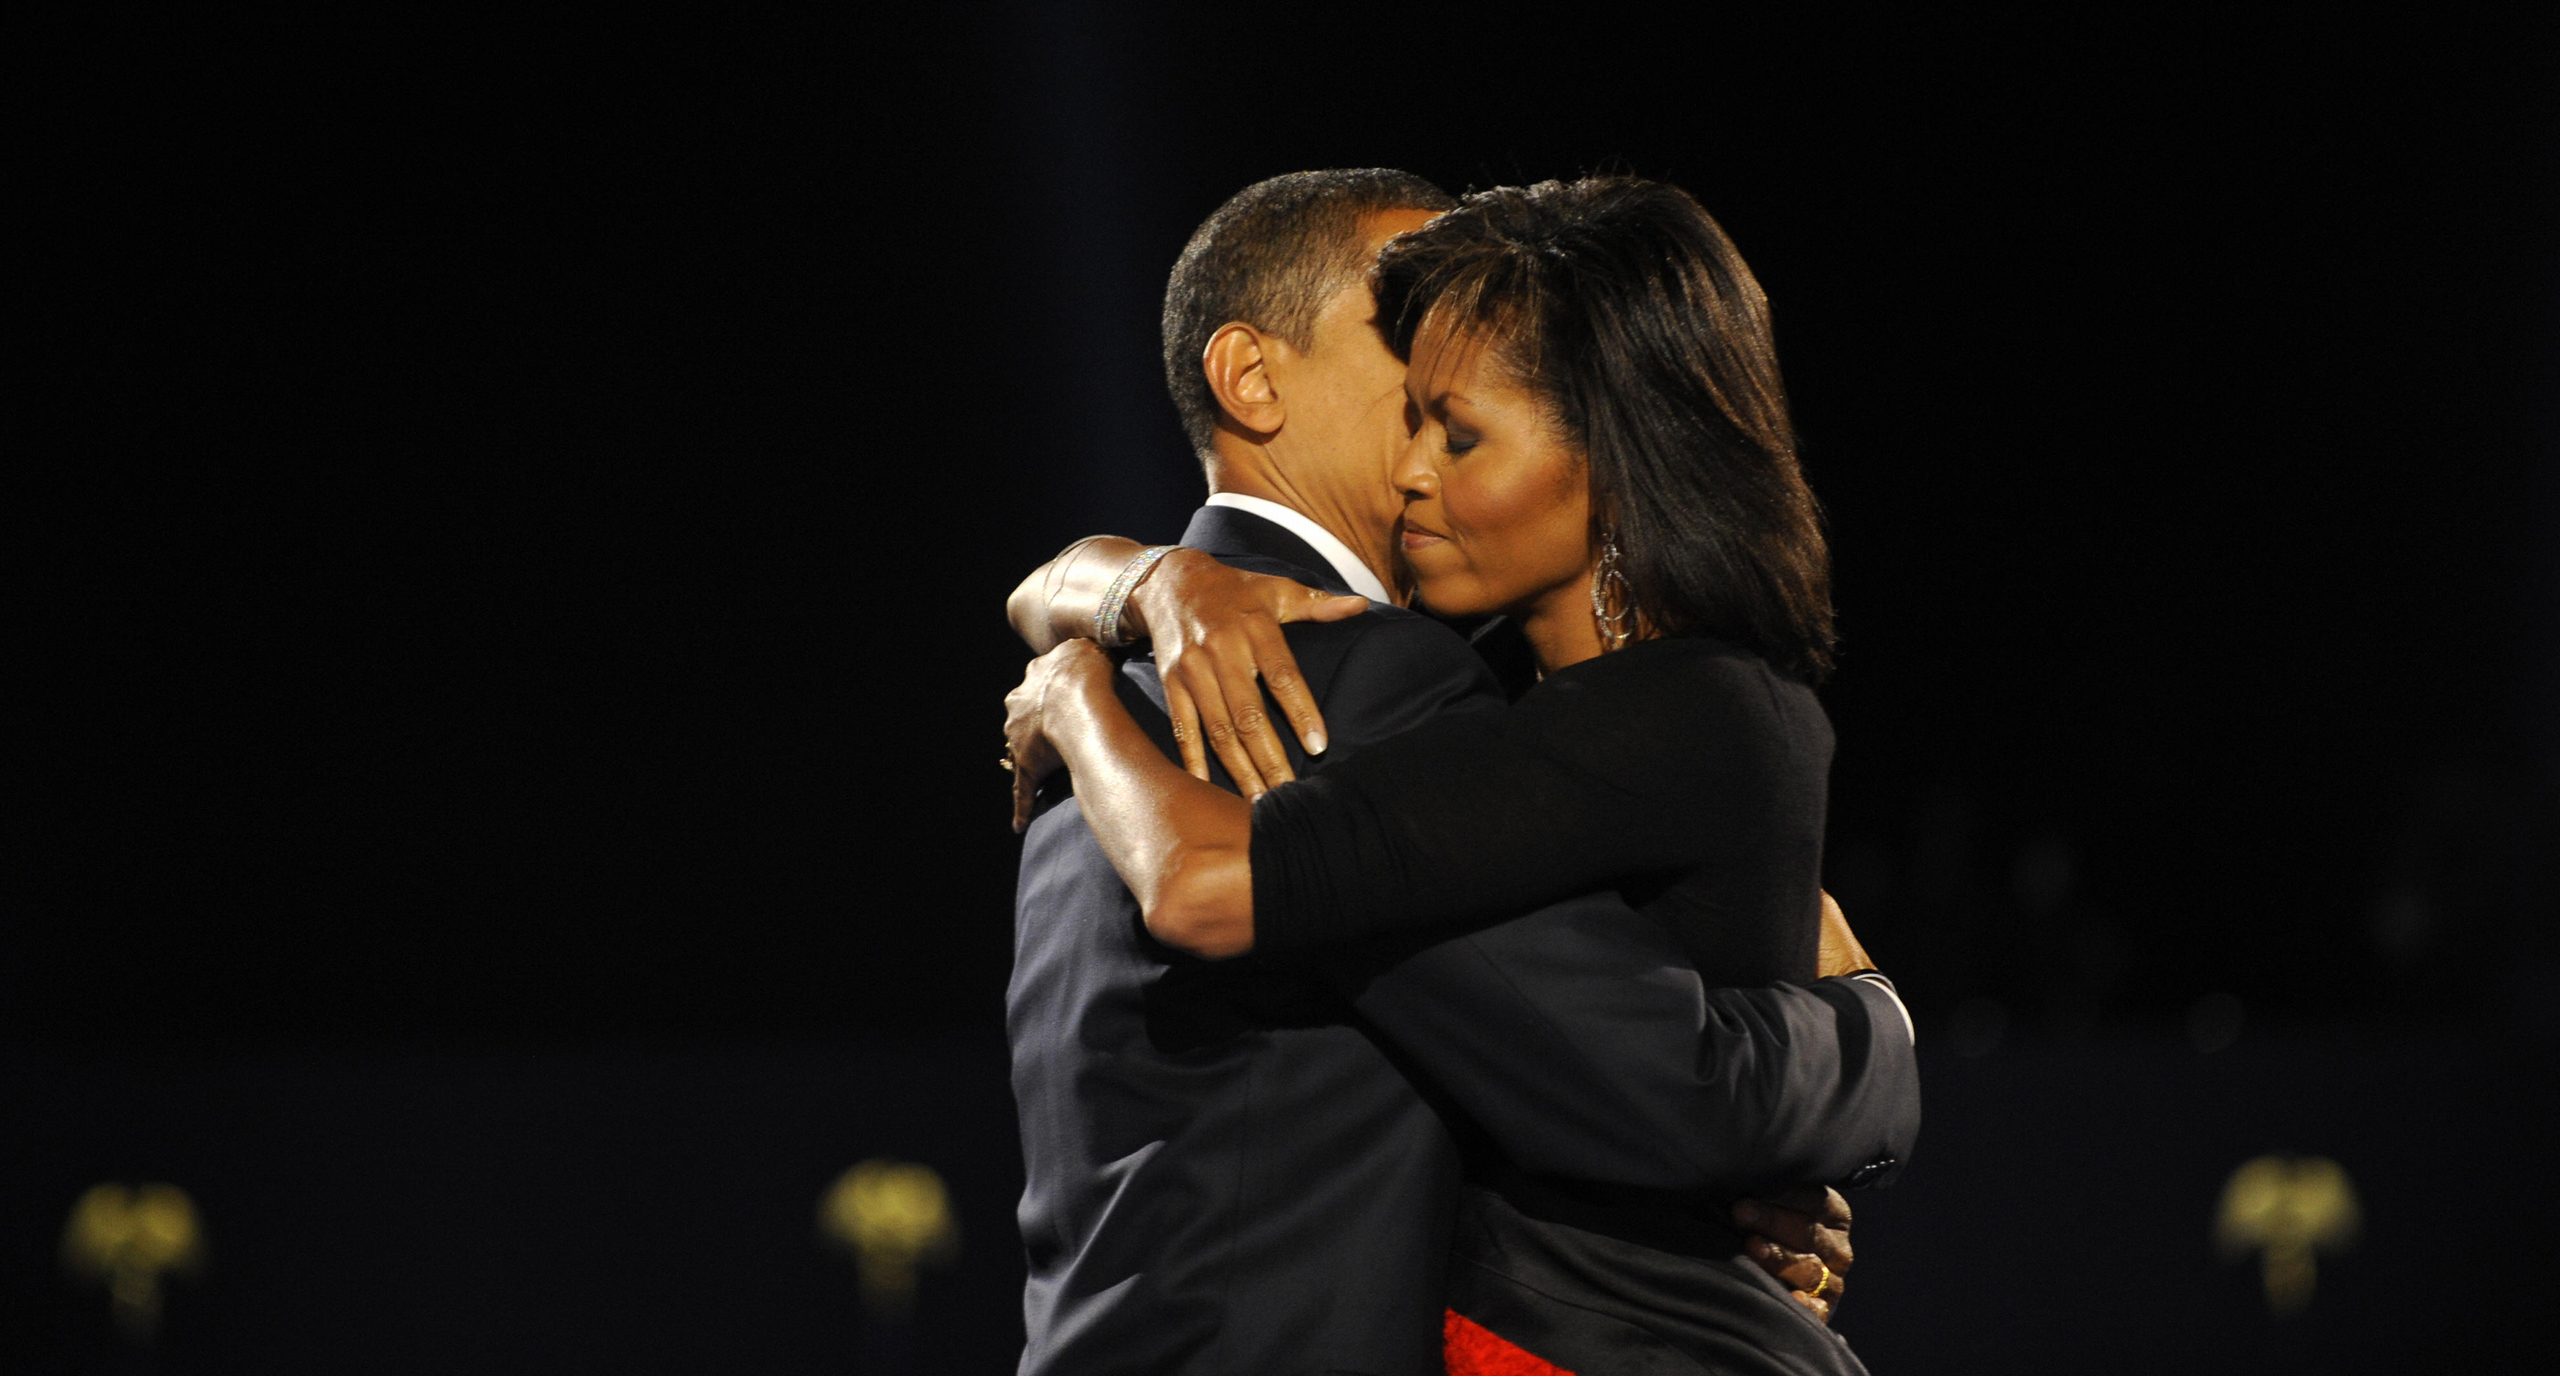 President-elect Barack Obama and his wife Michelle embrace on stage during Obama's election night victory rally at Grant Park in Chicago on November 4, 2008.